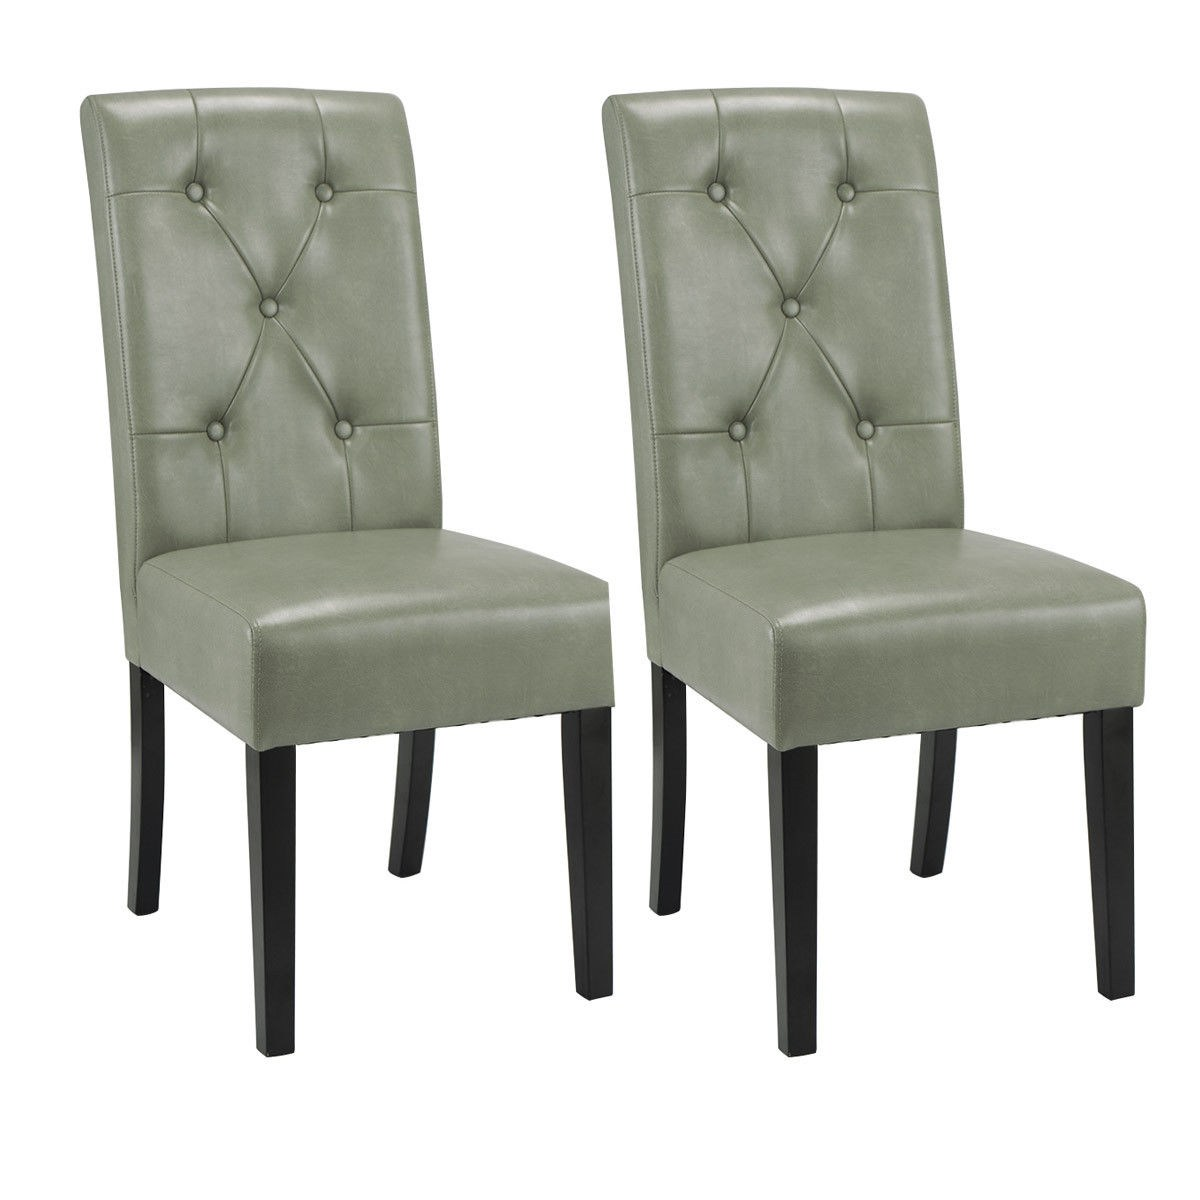 Tufted High Back Chair Costway Set Of 2 Dining Chairs Tufted Pu Leather High Back Armless Accent Home Kitchen